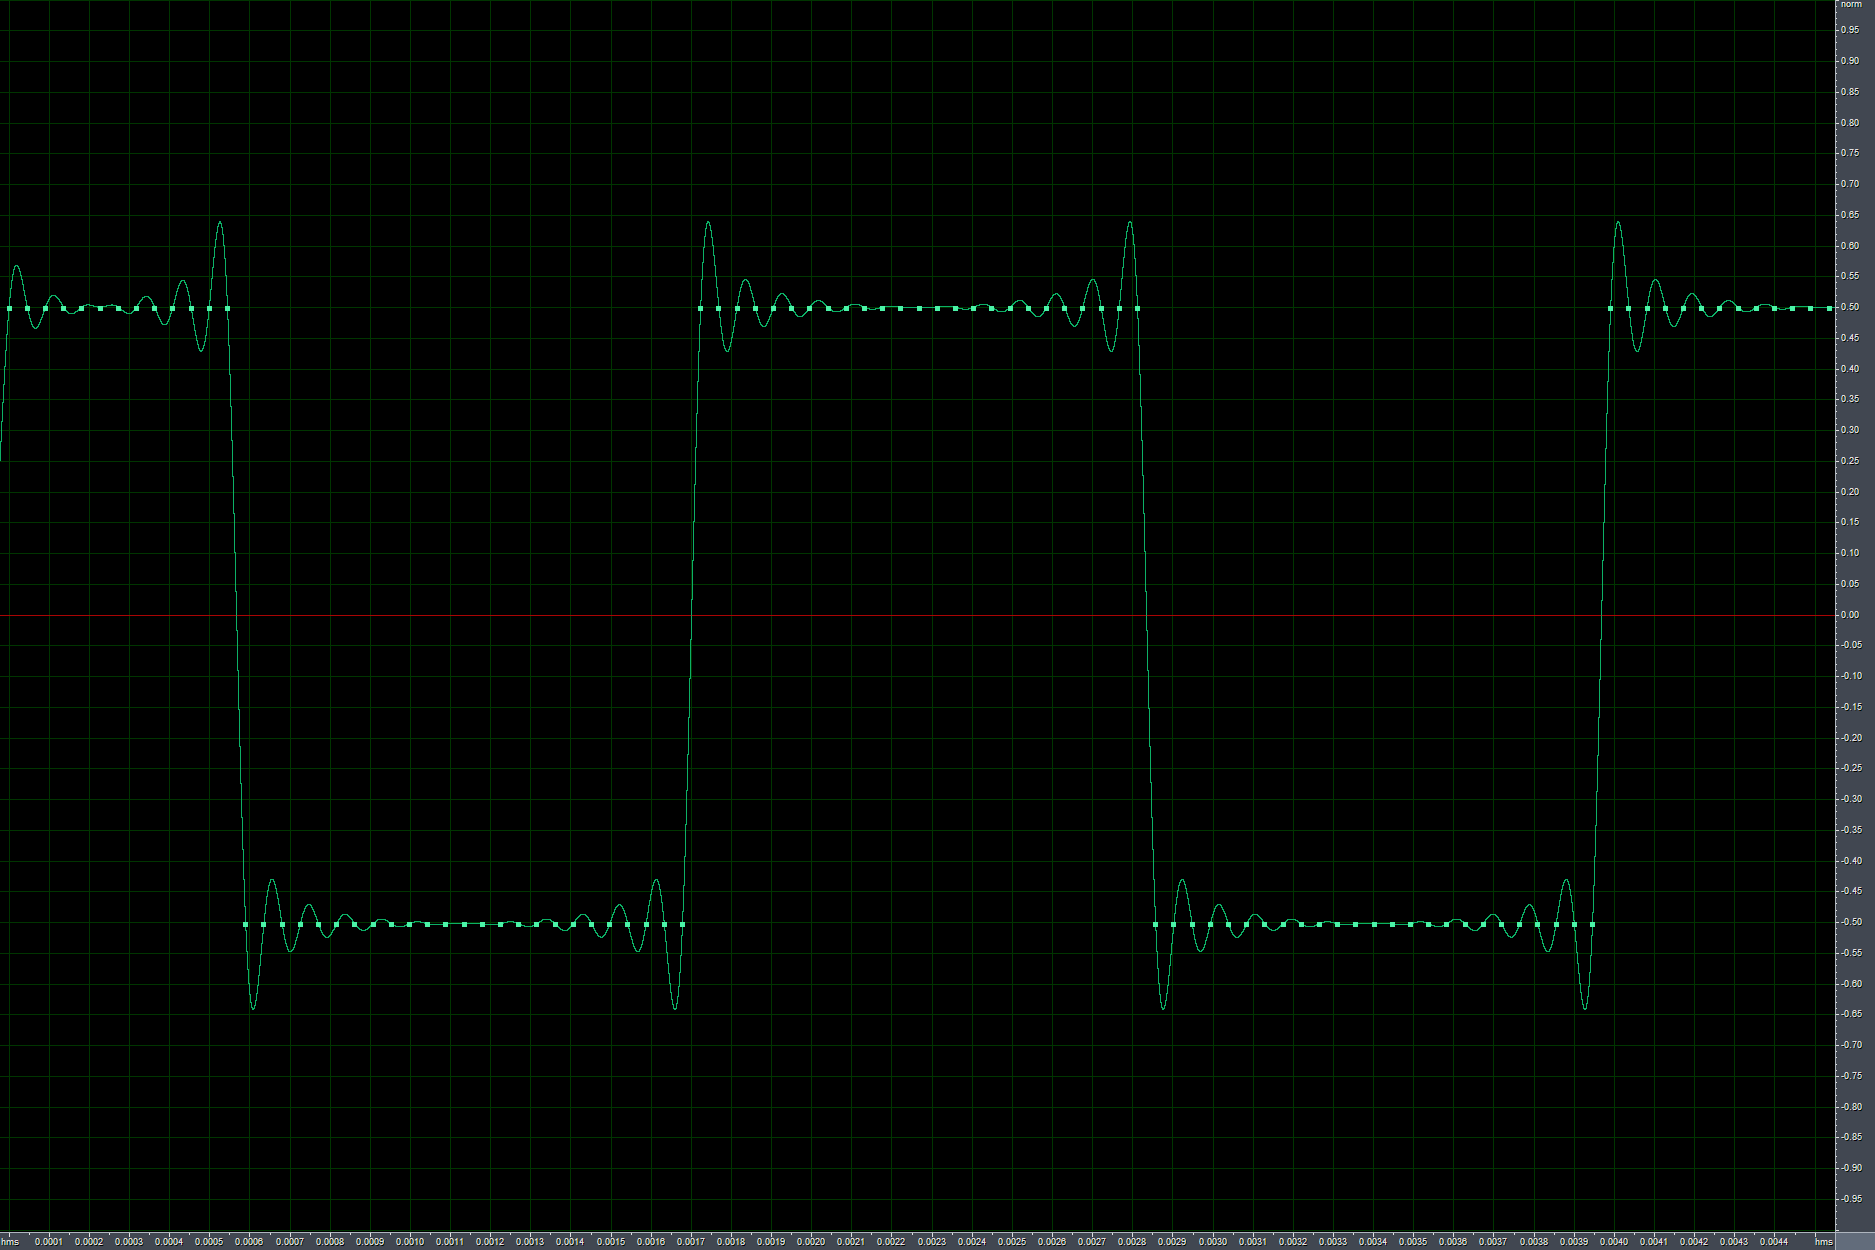 Band-limited square waves